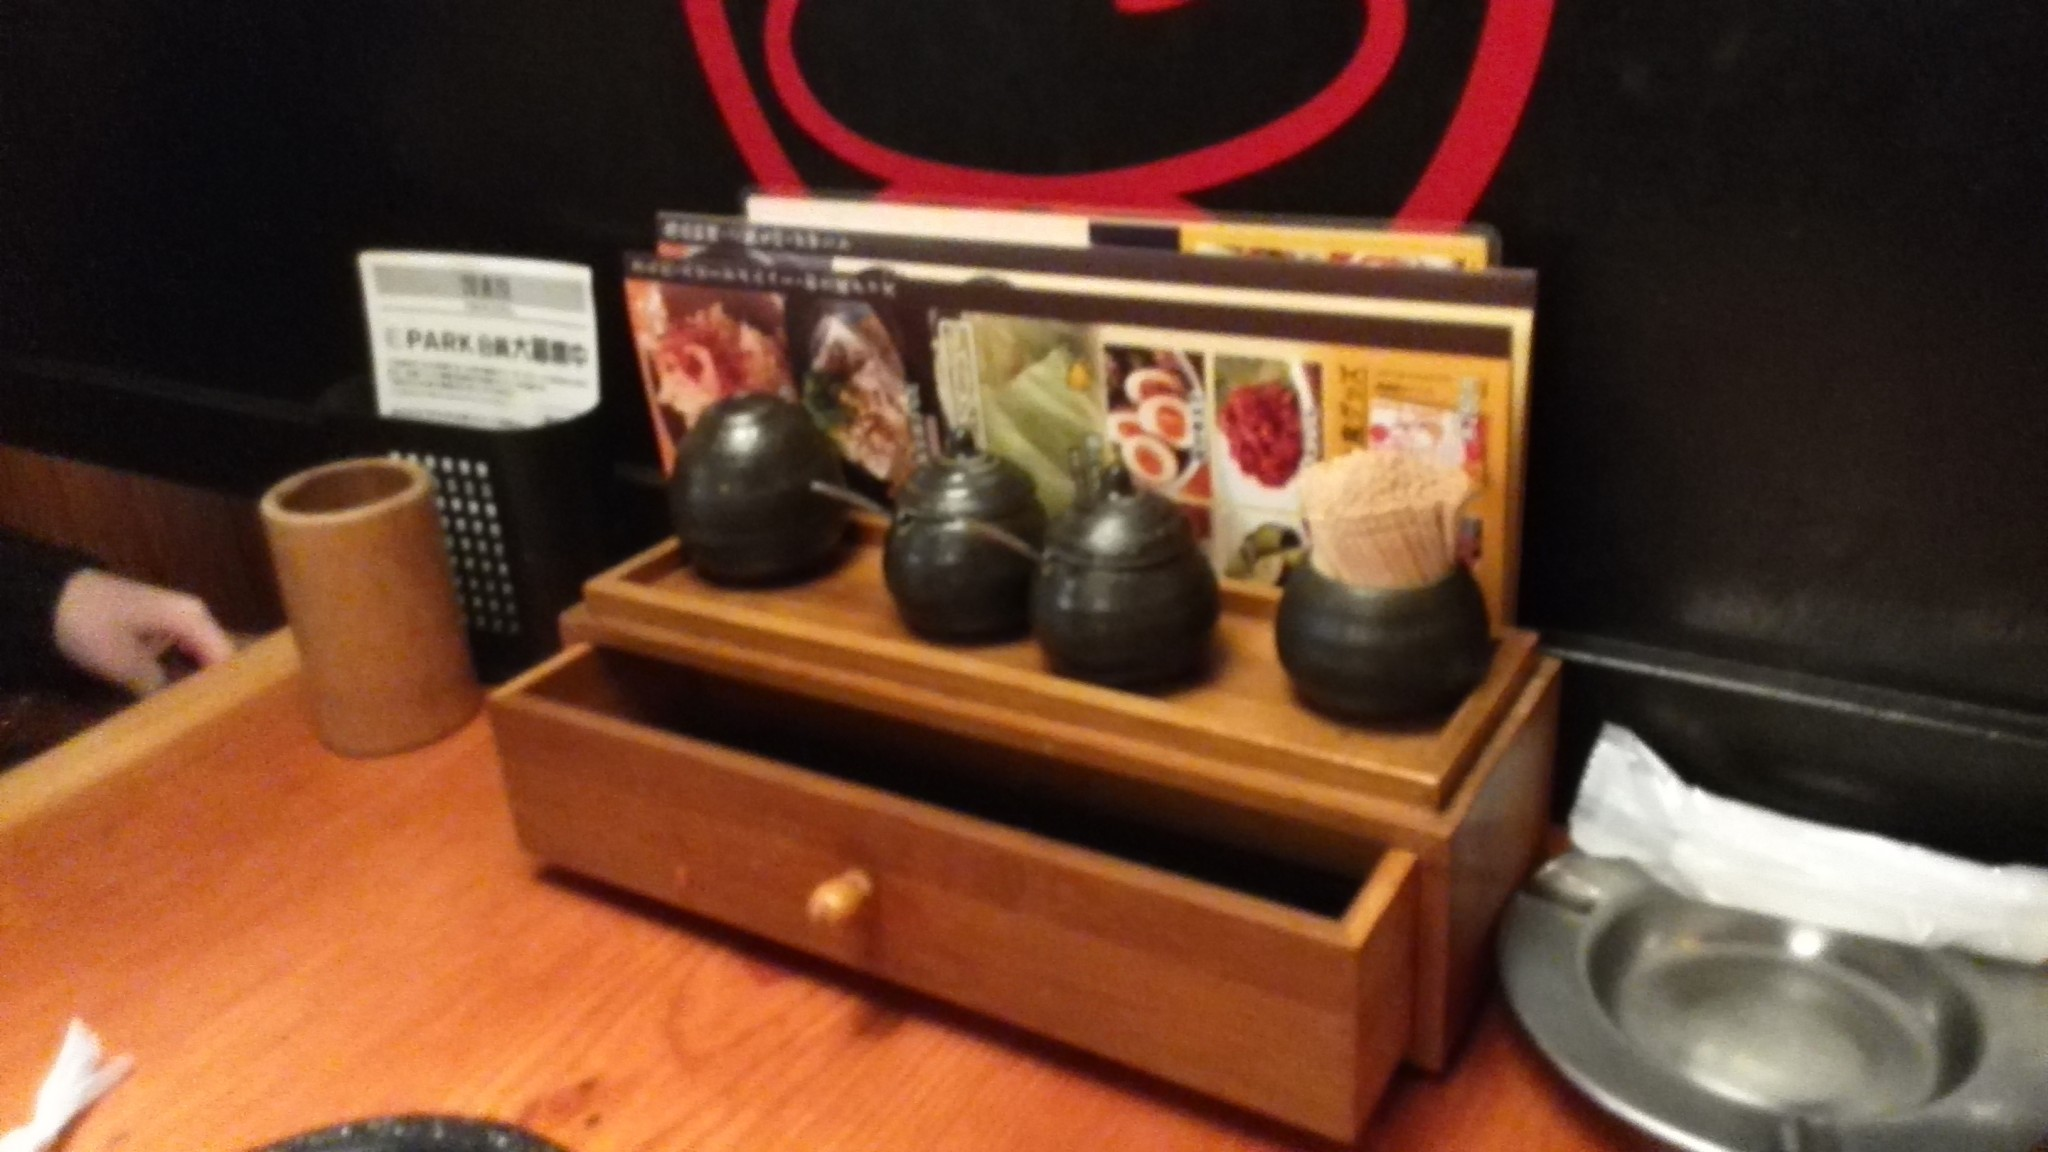 Little drawer at Torikizoku with chopsticks are various spices, a popular Japanese Izakaya restaurant